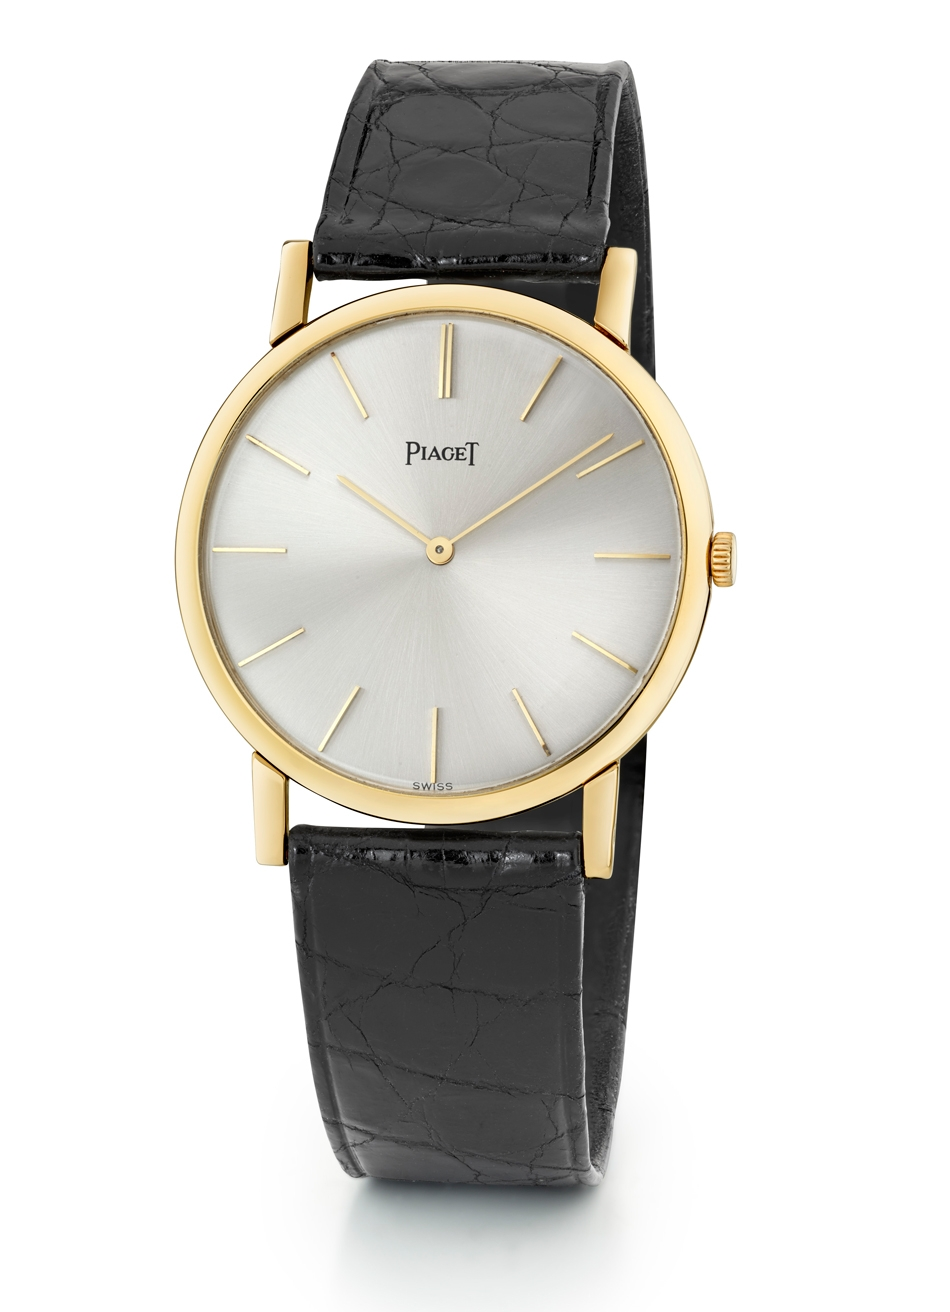 Piaget_Private-Collection_YG-ultra-thin-9P-watchs_1957_LR.jpg